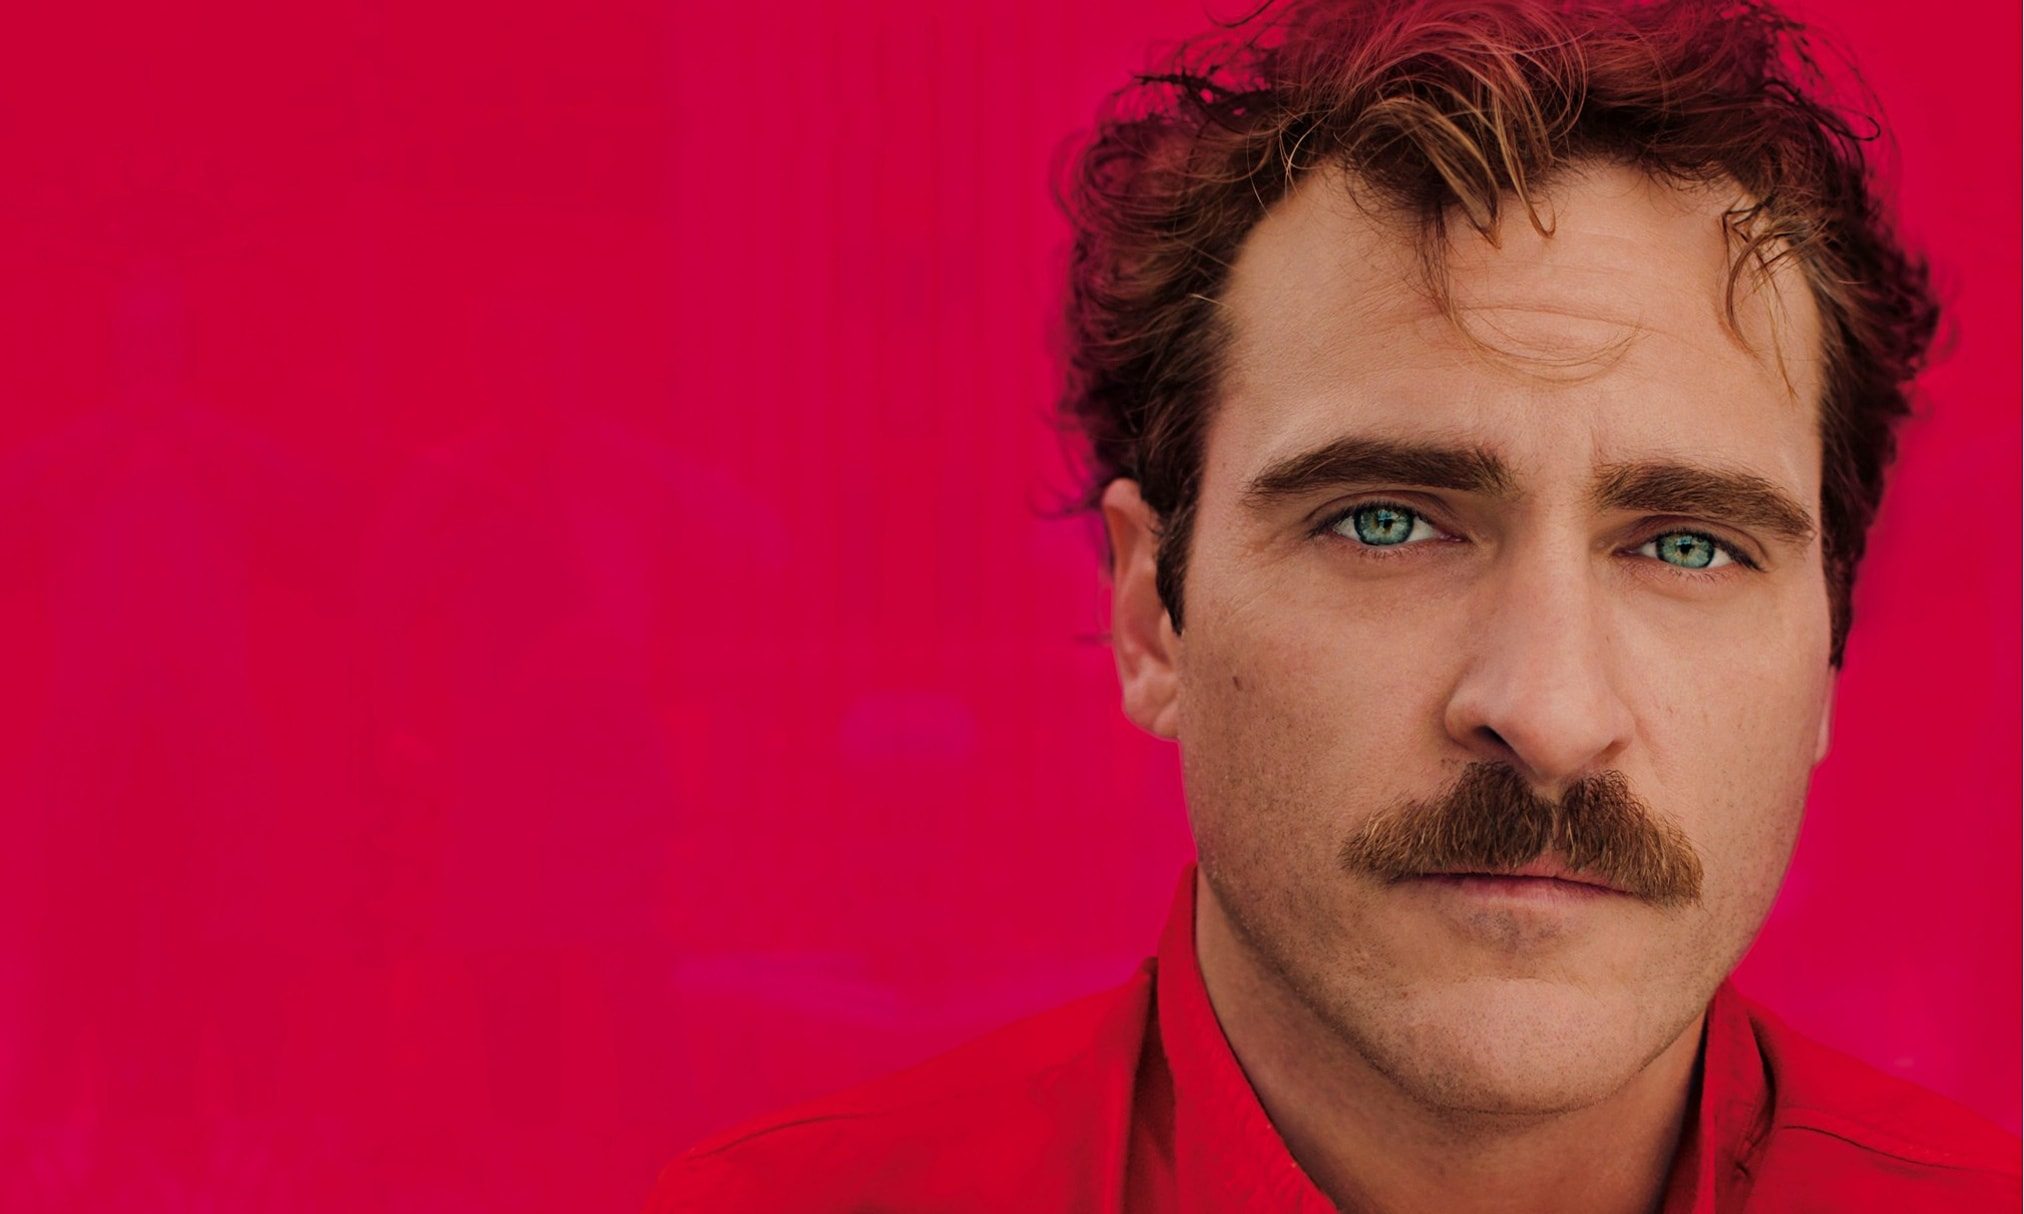 Joaquin Phoenix Widescreen for desktop